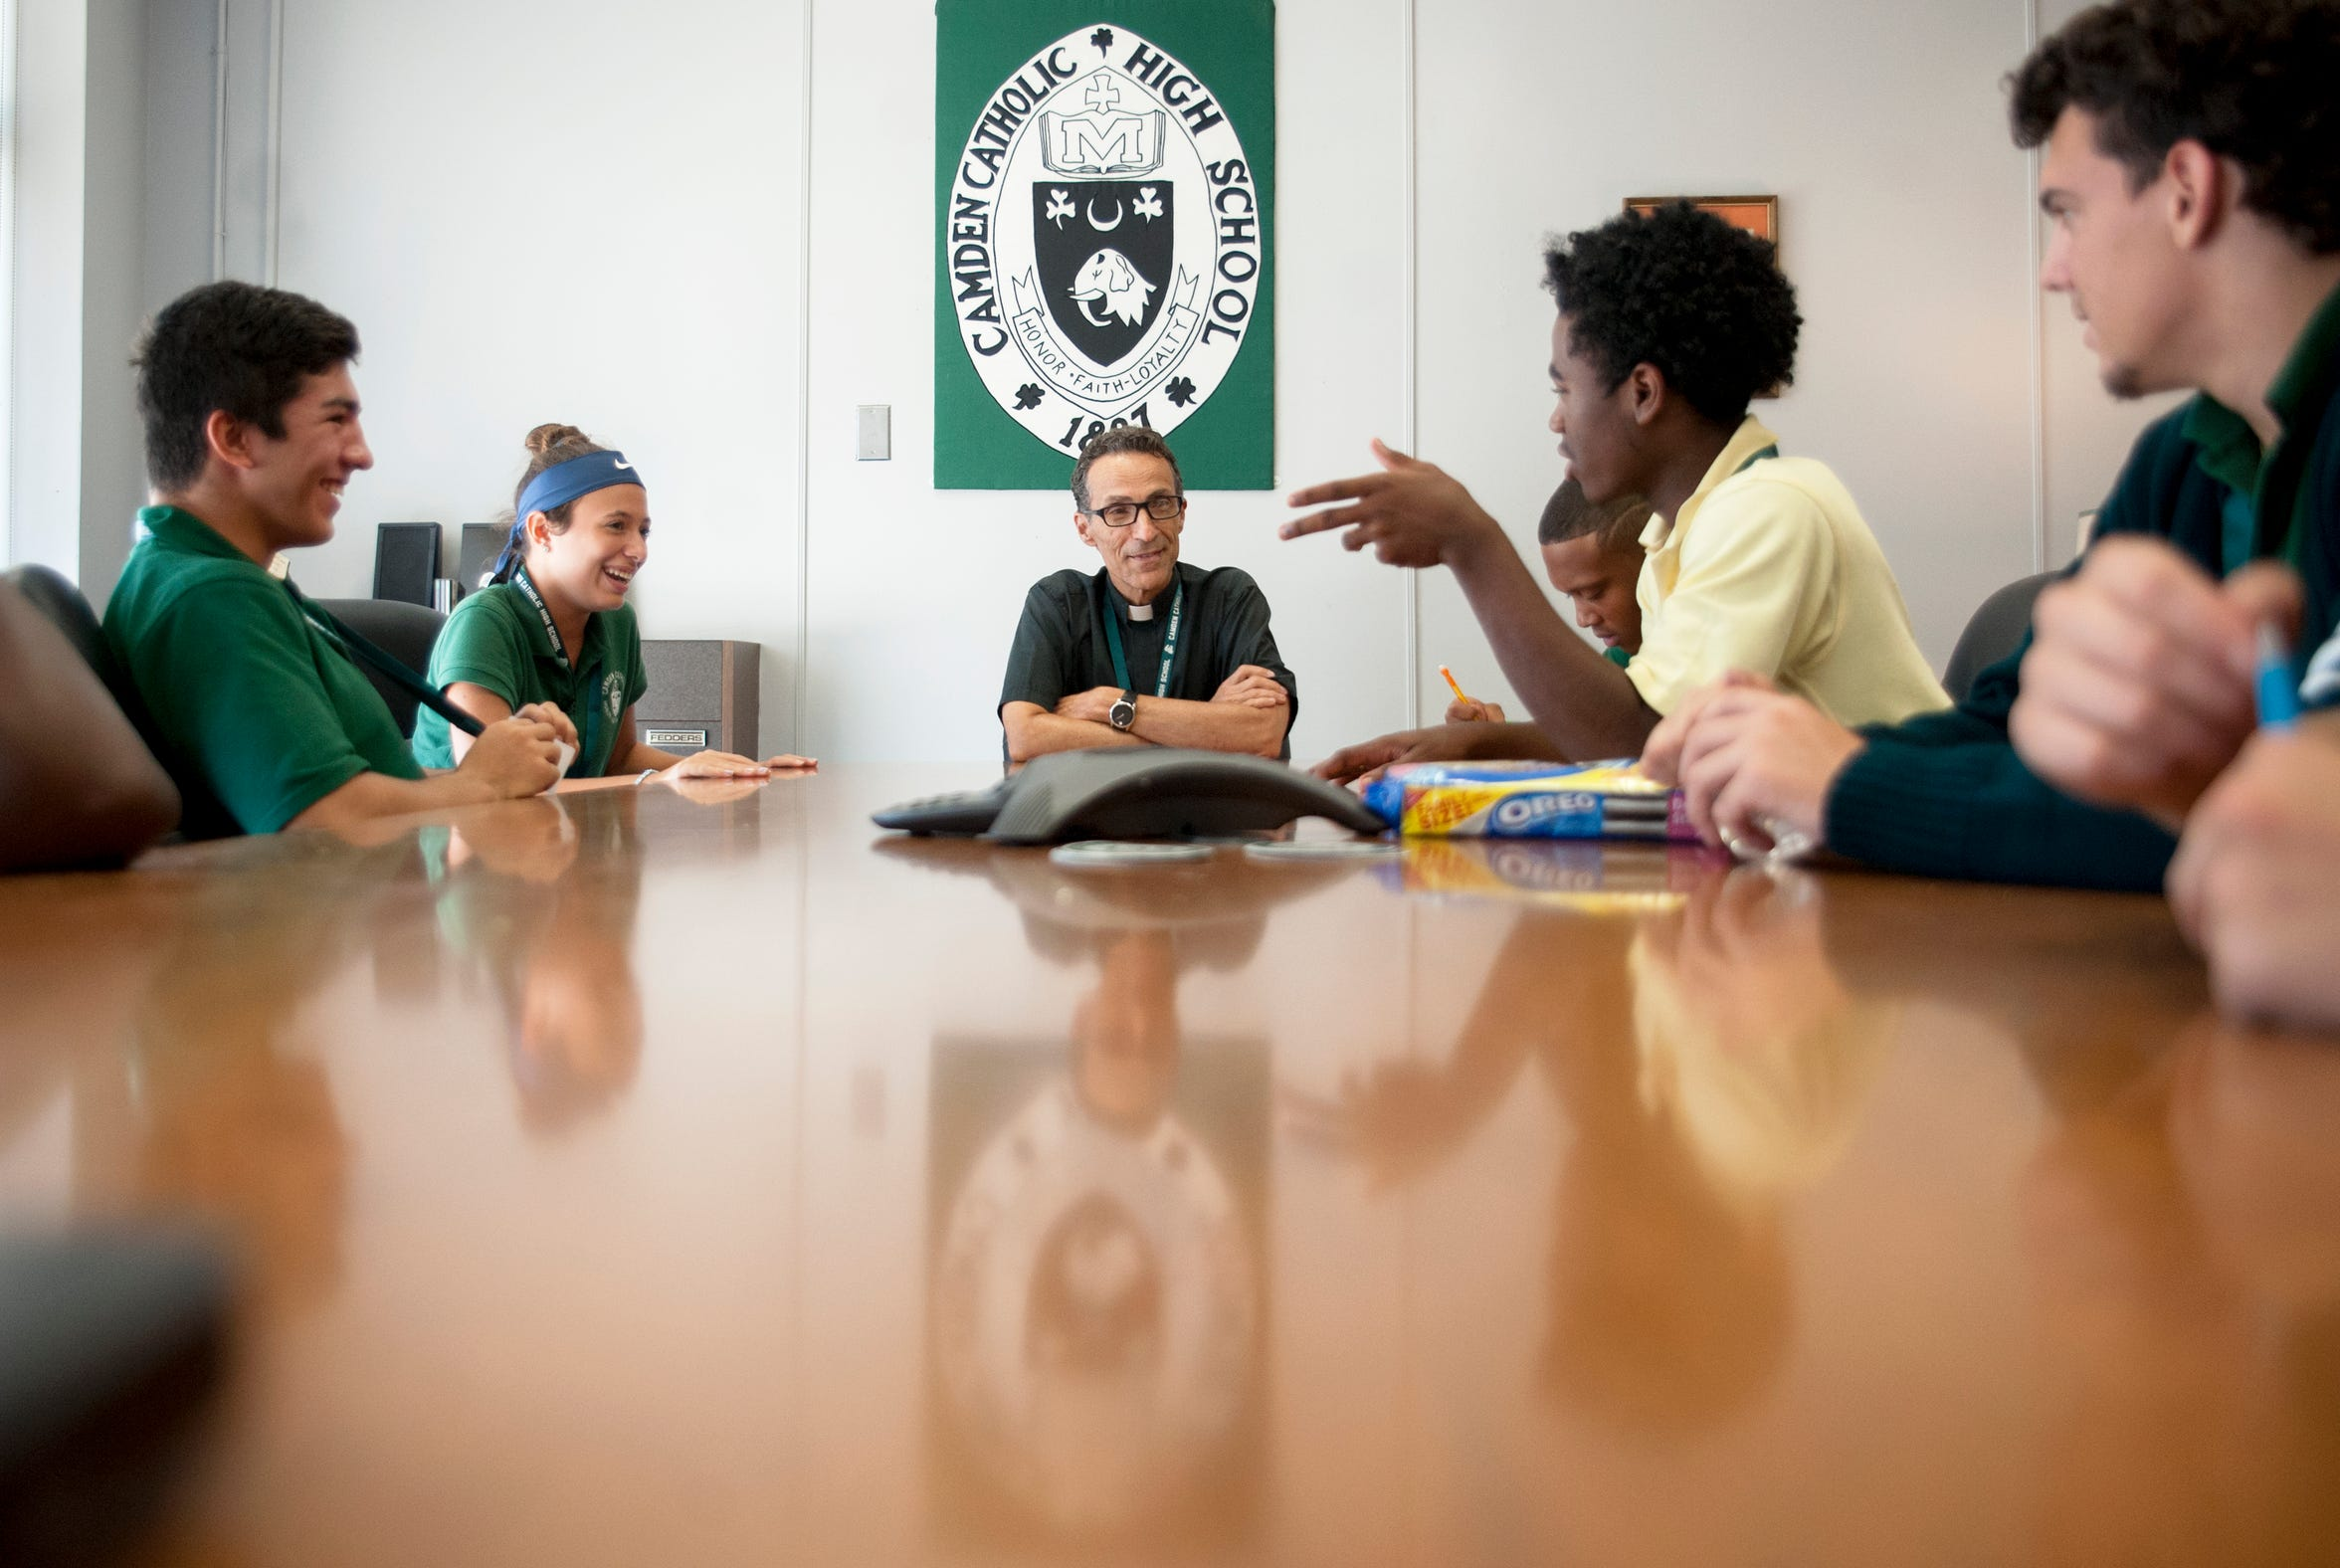 Father Joe Capella, center, rector at Camden Catholic High School in Cherry Hill, speaks with Camden Catholic students, from left, Harrison Hinojosa, Natalie Wisnoski, Cooper Grimes, George Lecato, and Brandon Mooney as the students visited Capalla in his office during their lunch period on Wednesday, September 19, 2018.